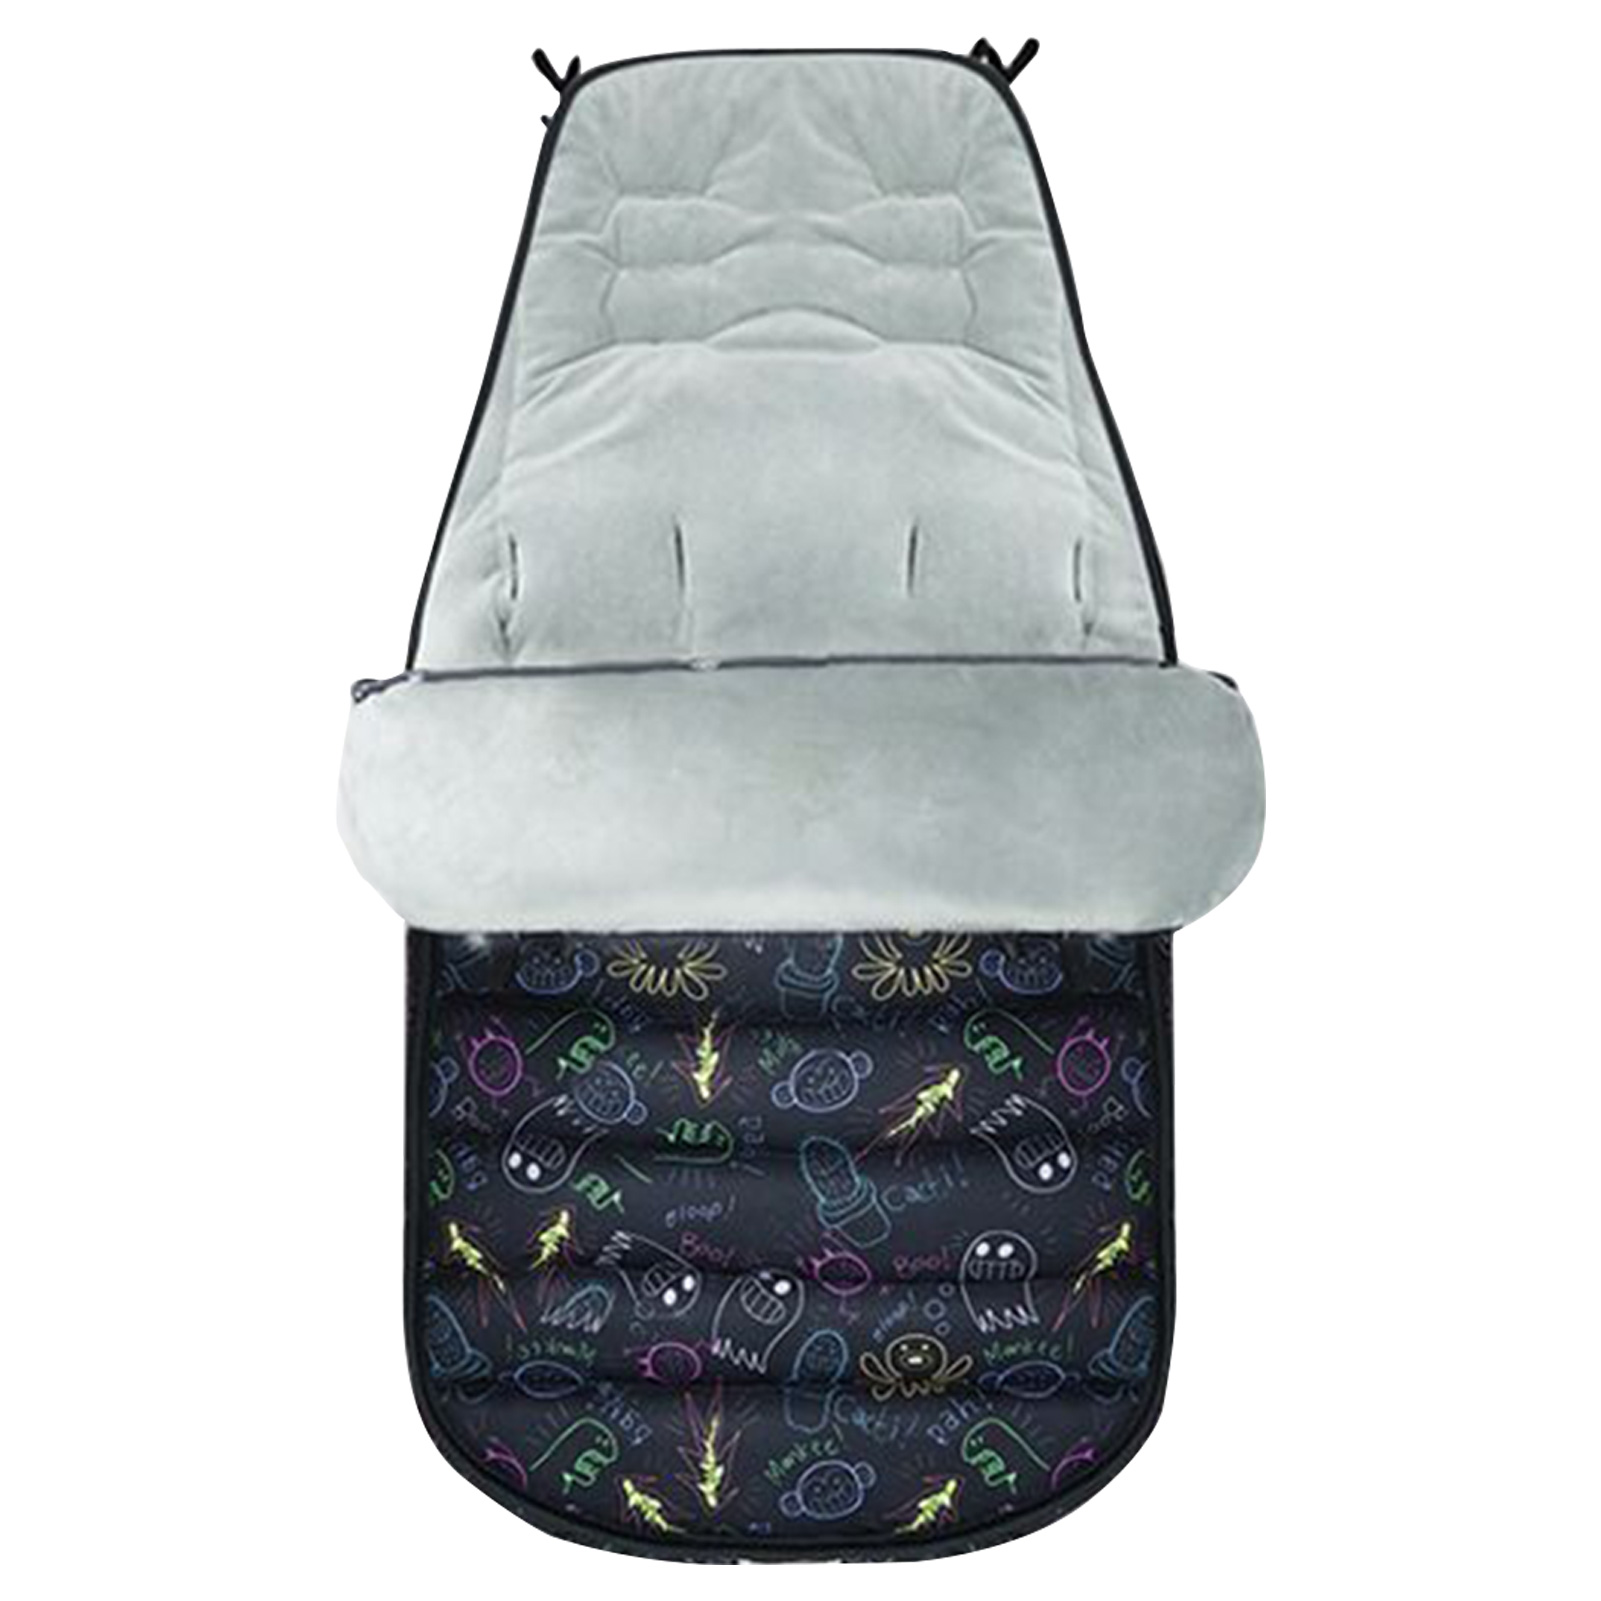 Baby Stroller Sleeping Bag Warm Stroller Foot Cover Universal Thick Seat Cushion Foot Cover Windproof Cover Winter